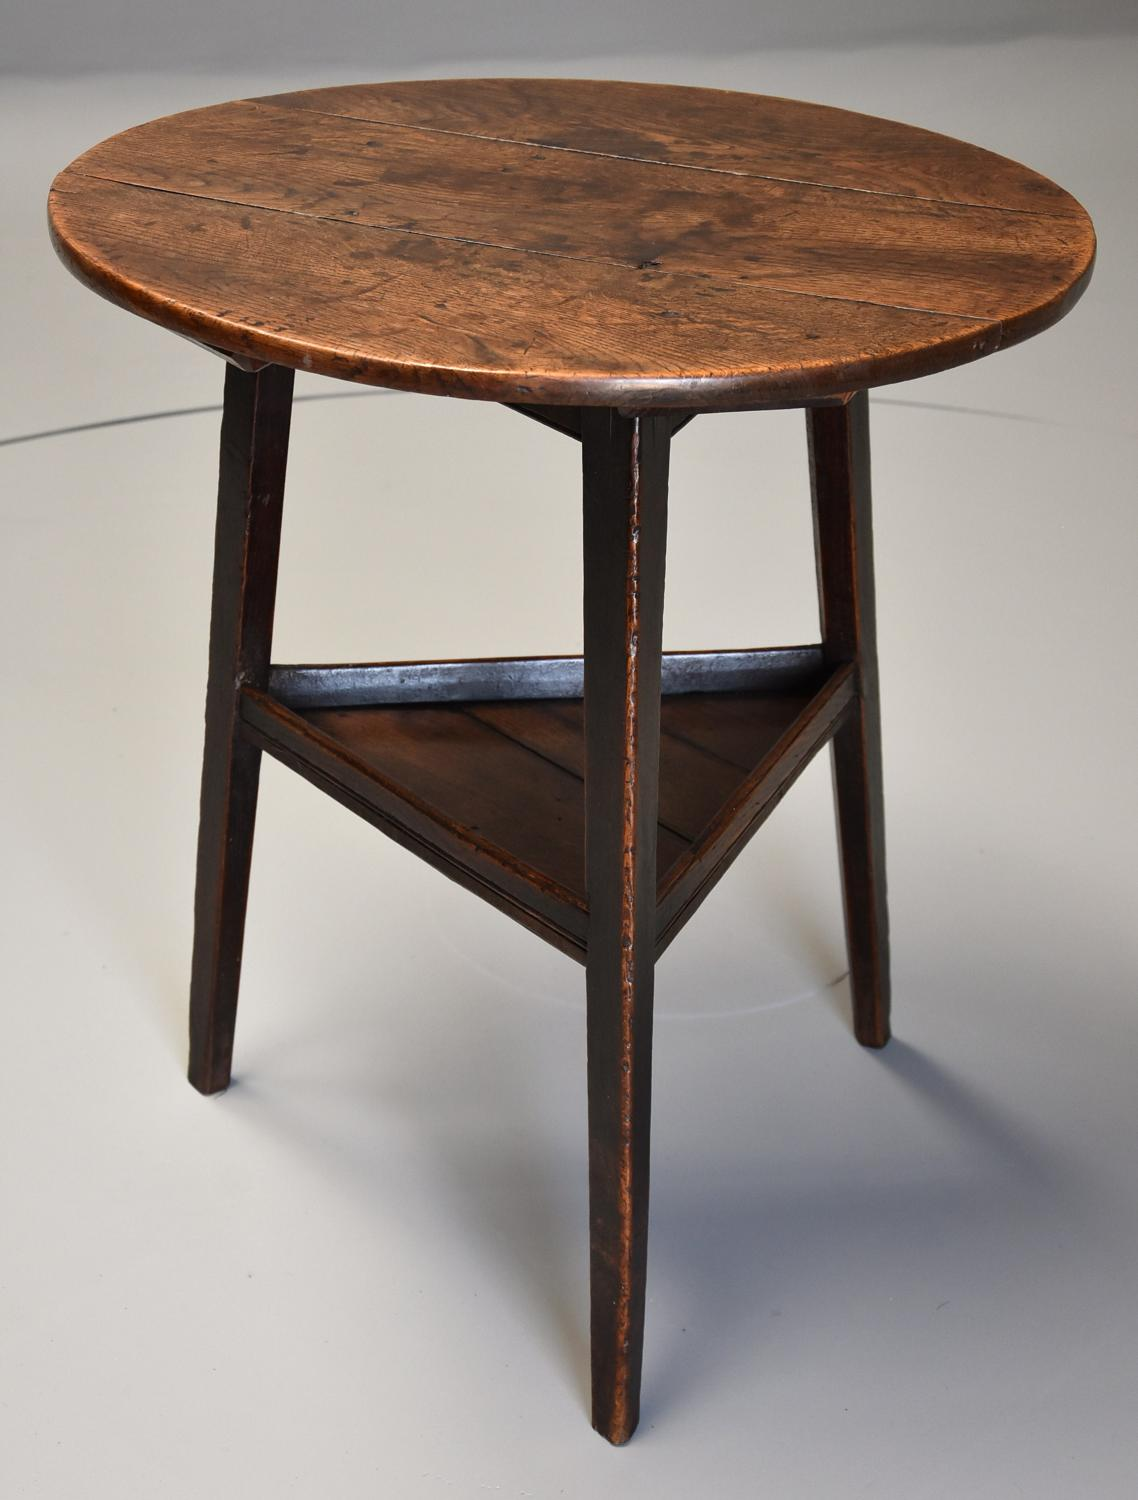 Late 18th century oak cricket table with shelf and of fine patina